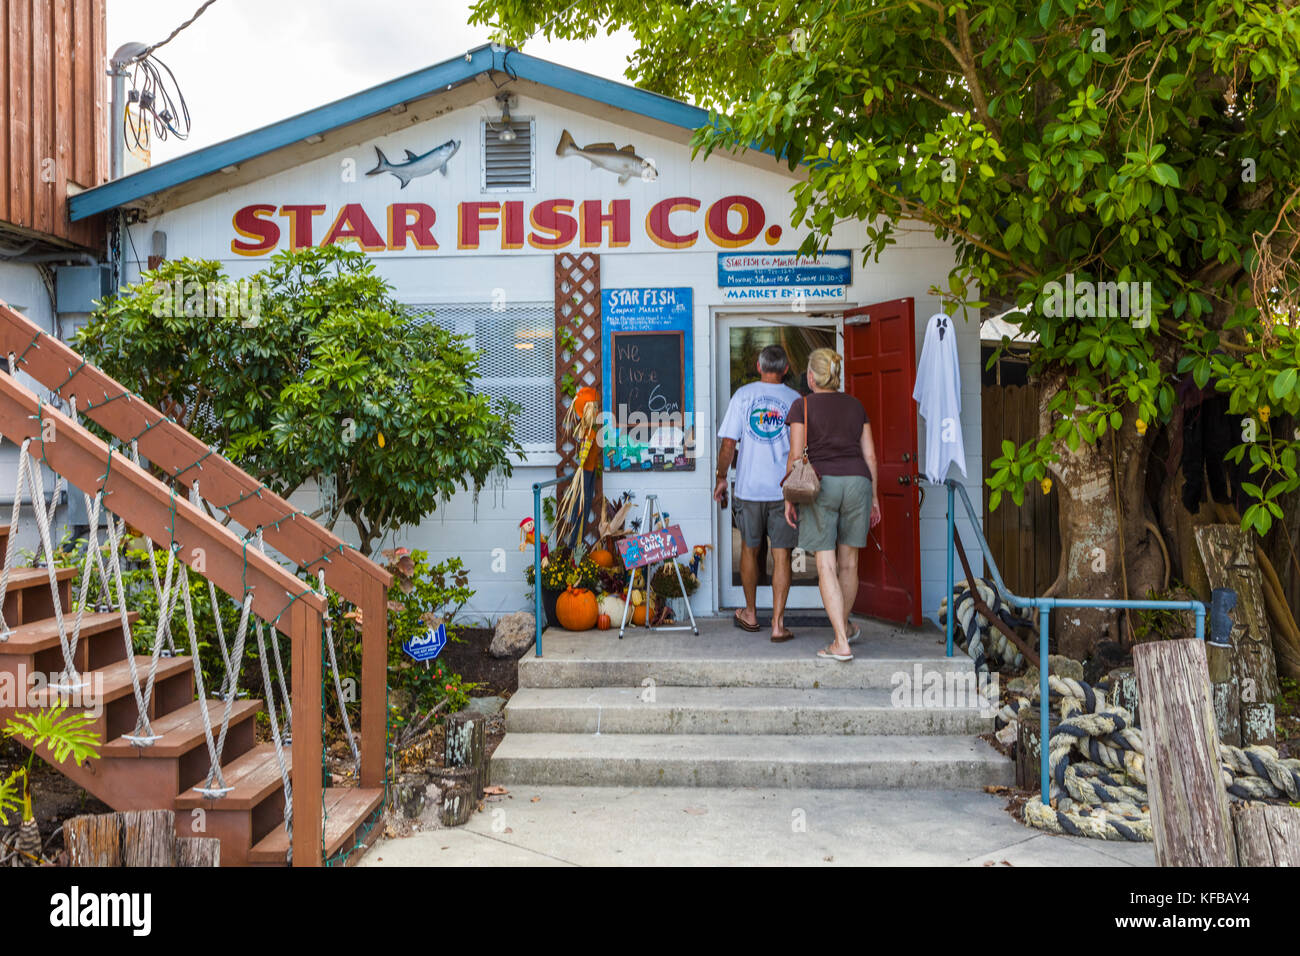 Couple entering Star Fish Co Seafood Market and Dockside Restaurant in the historic Florida fishing village of Cortez - Stock Image